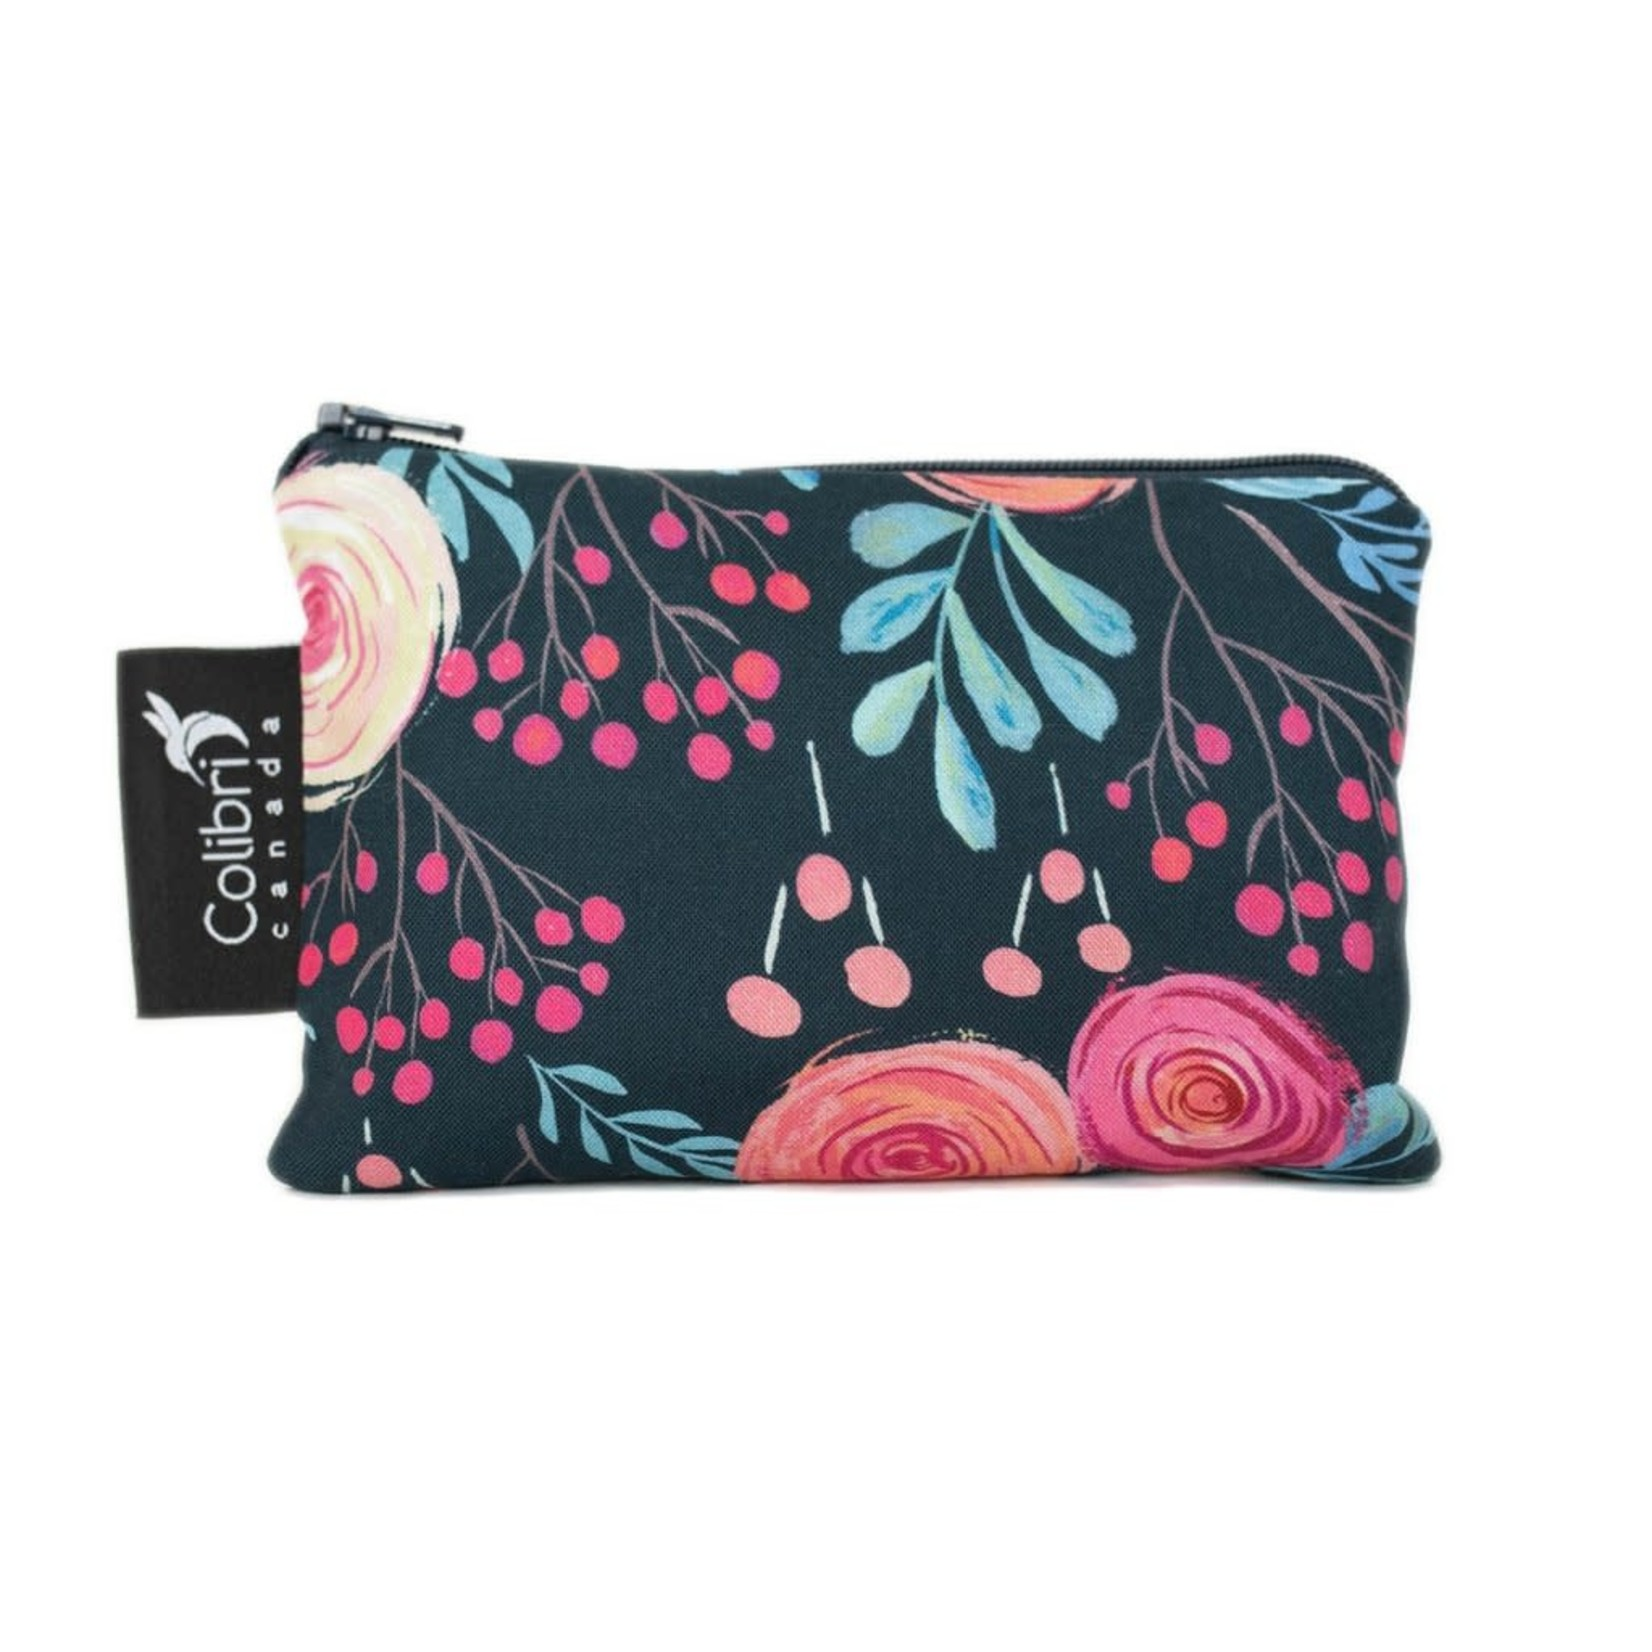 REUSABLE SNACK BAGS - ROSES